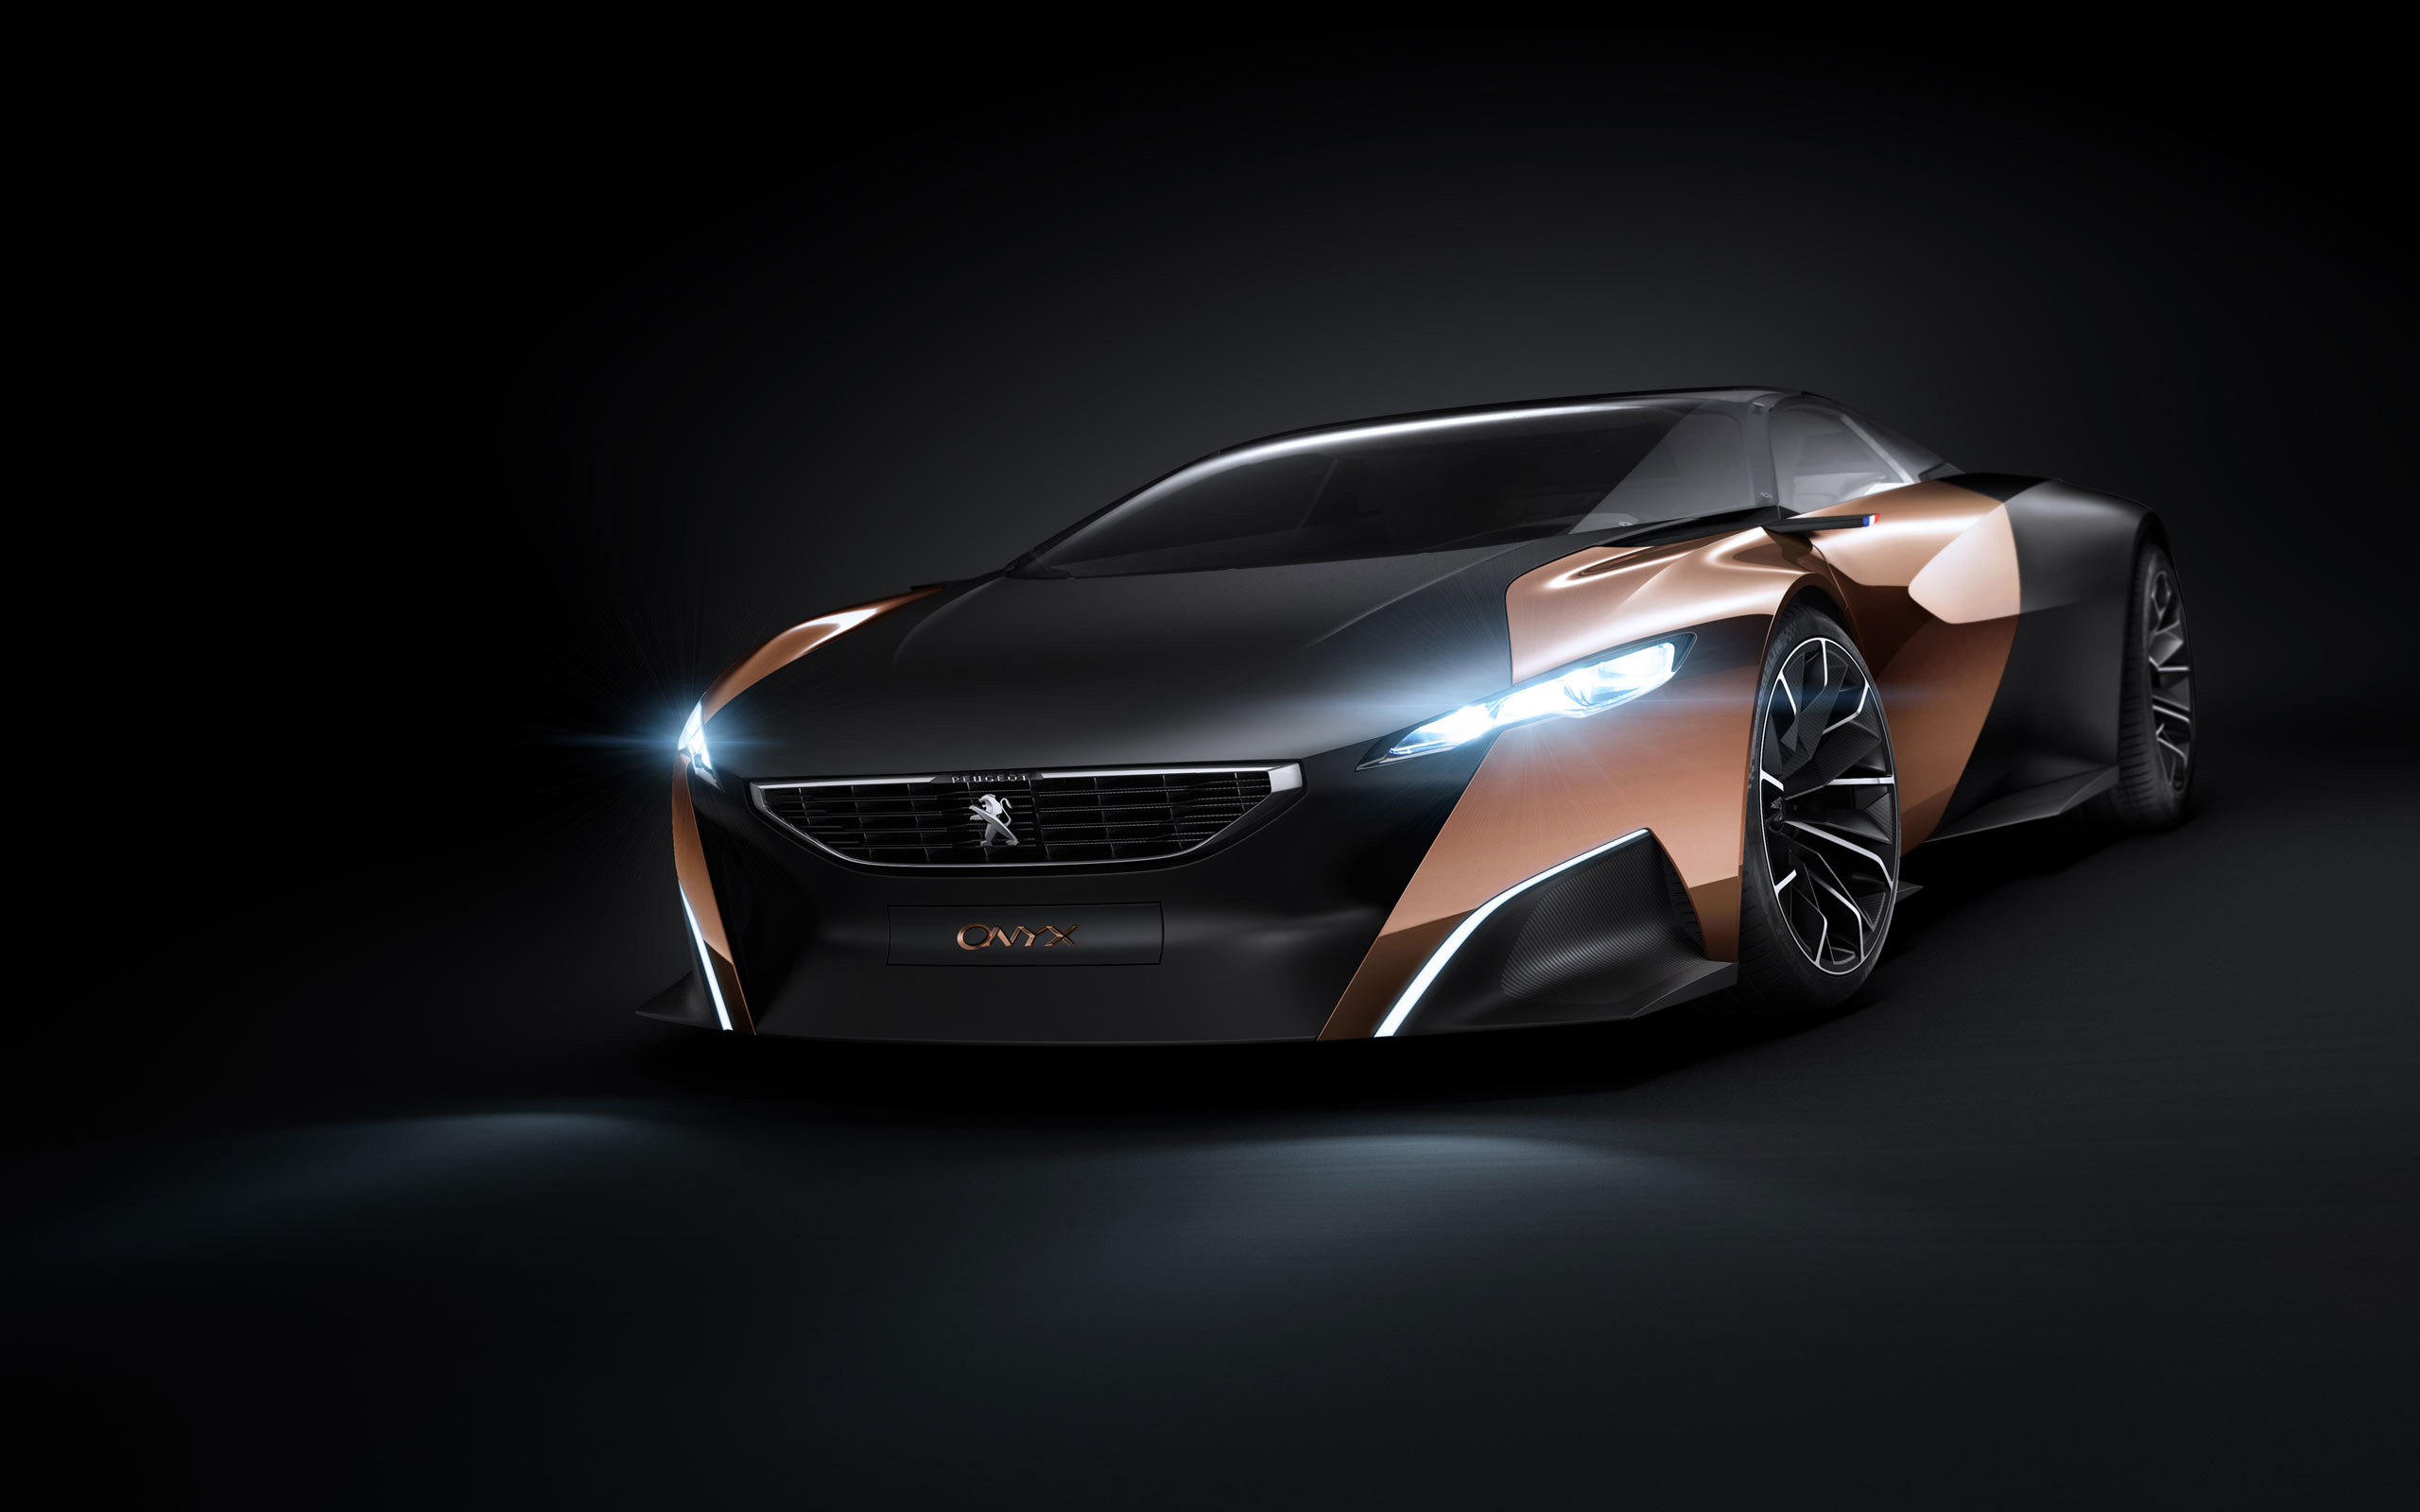 Peugeot Onyx Concept Car 2012 Wallpaper HD Car Wallpapers 2560x1600